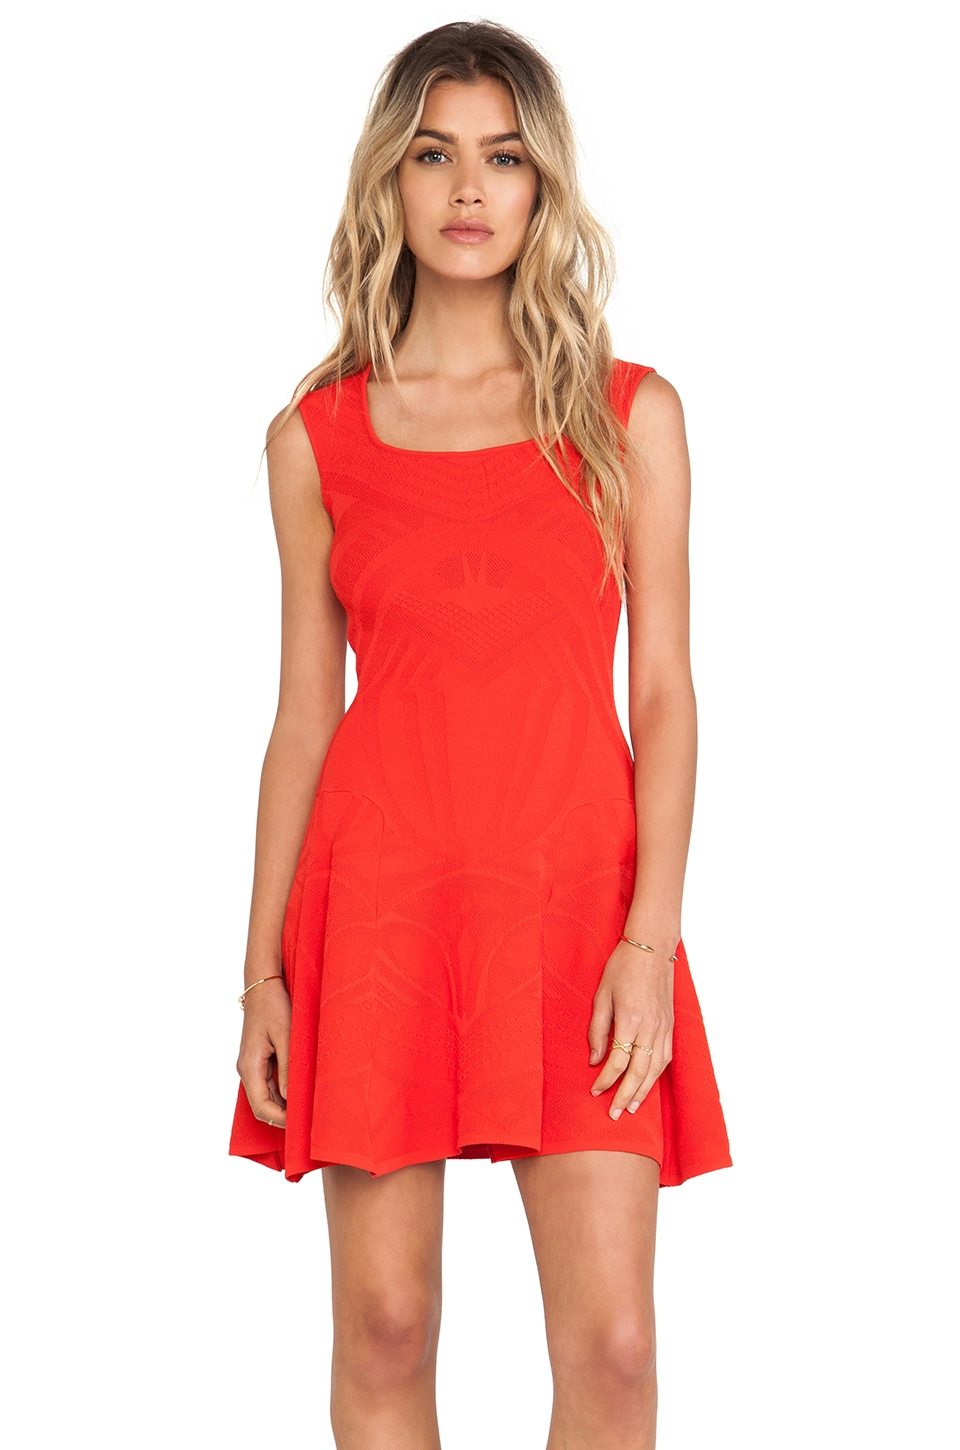 RVN Tribal Pointelle Dress in Coral